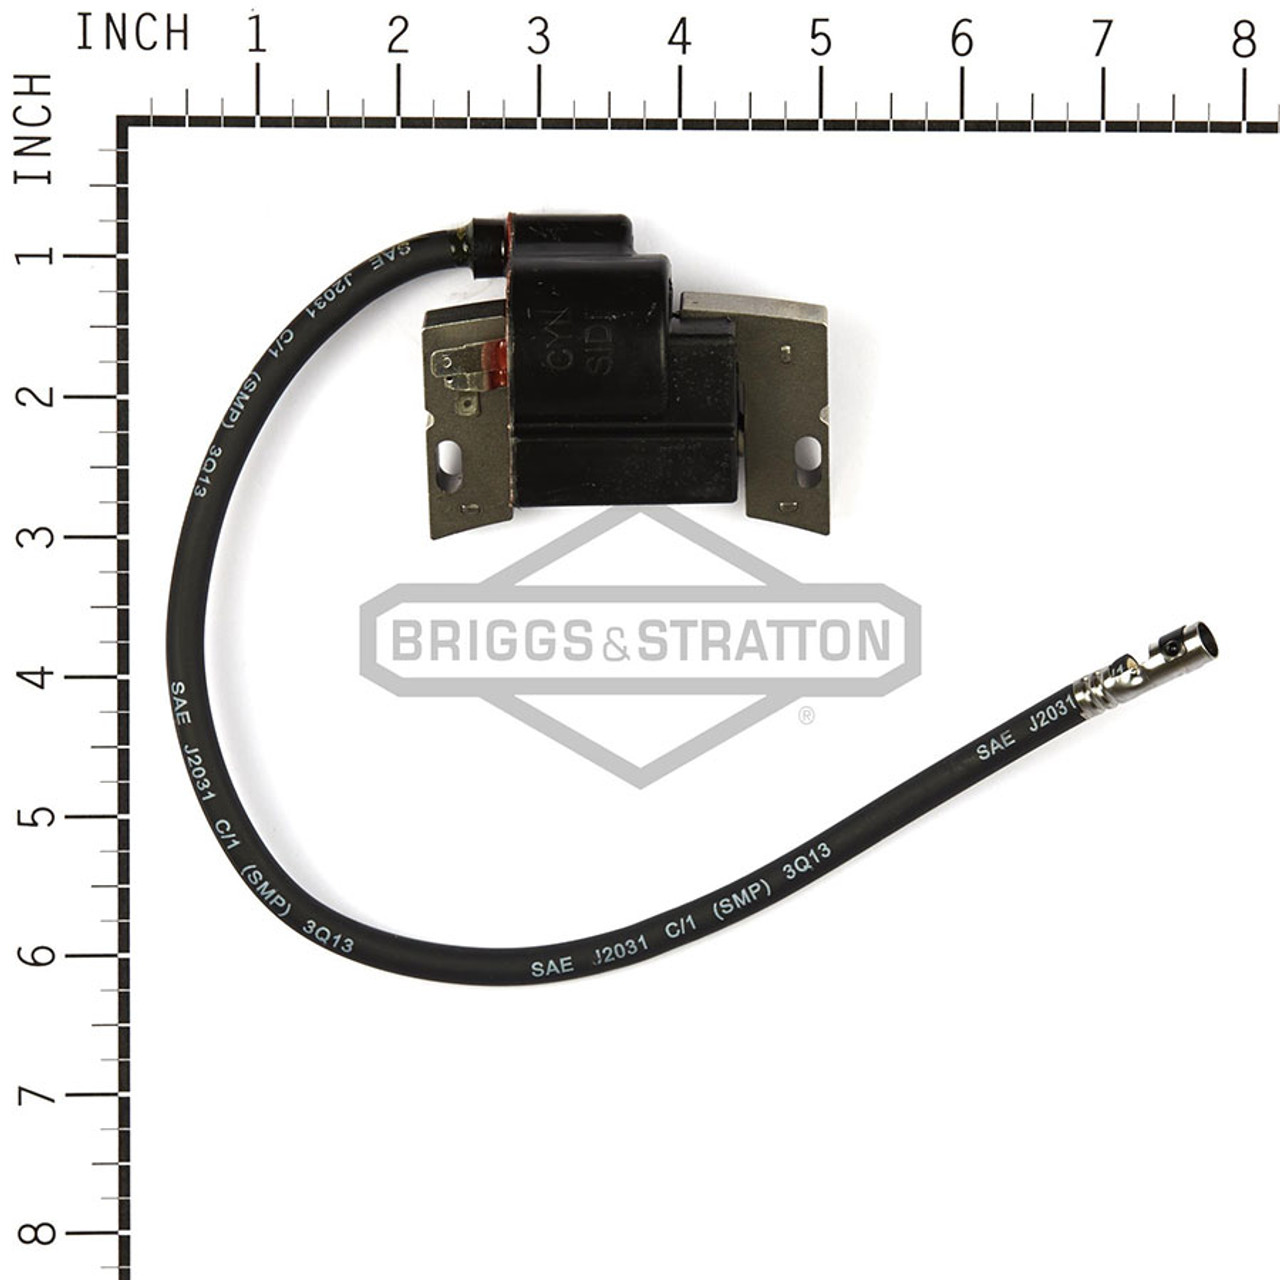 medium resolution of brigg stratton ignition system diagram